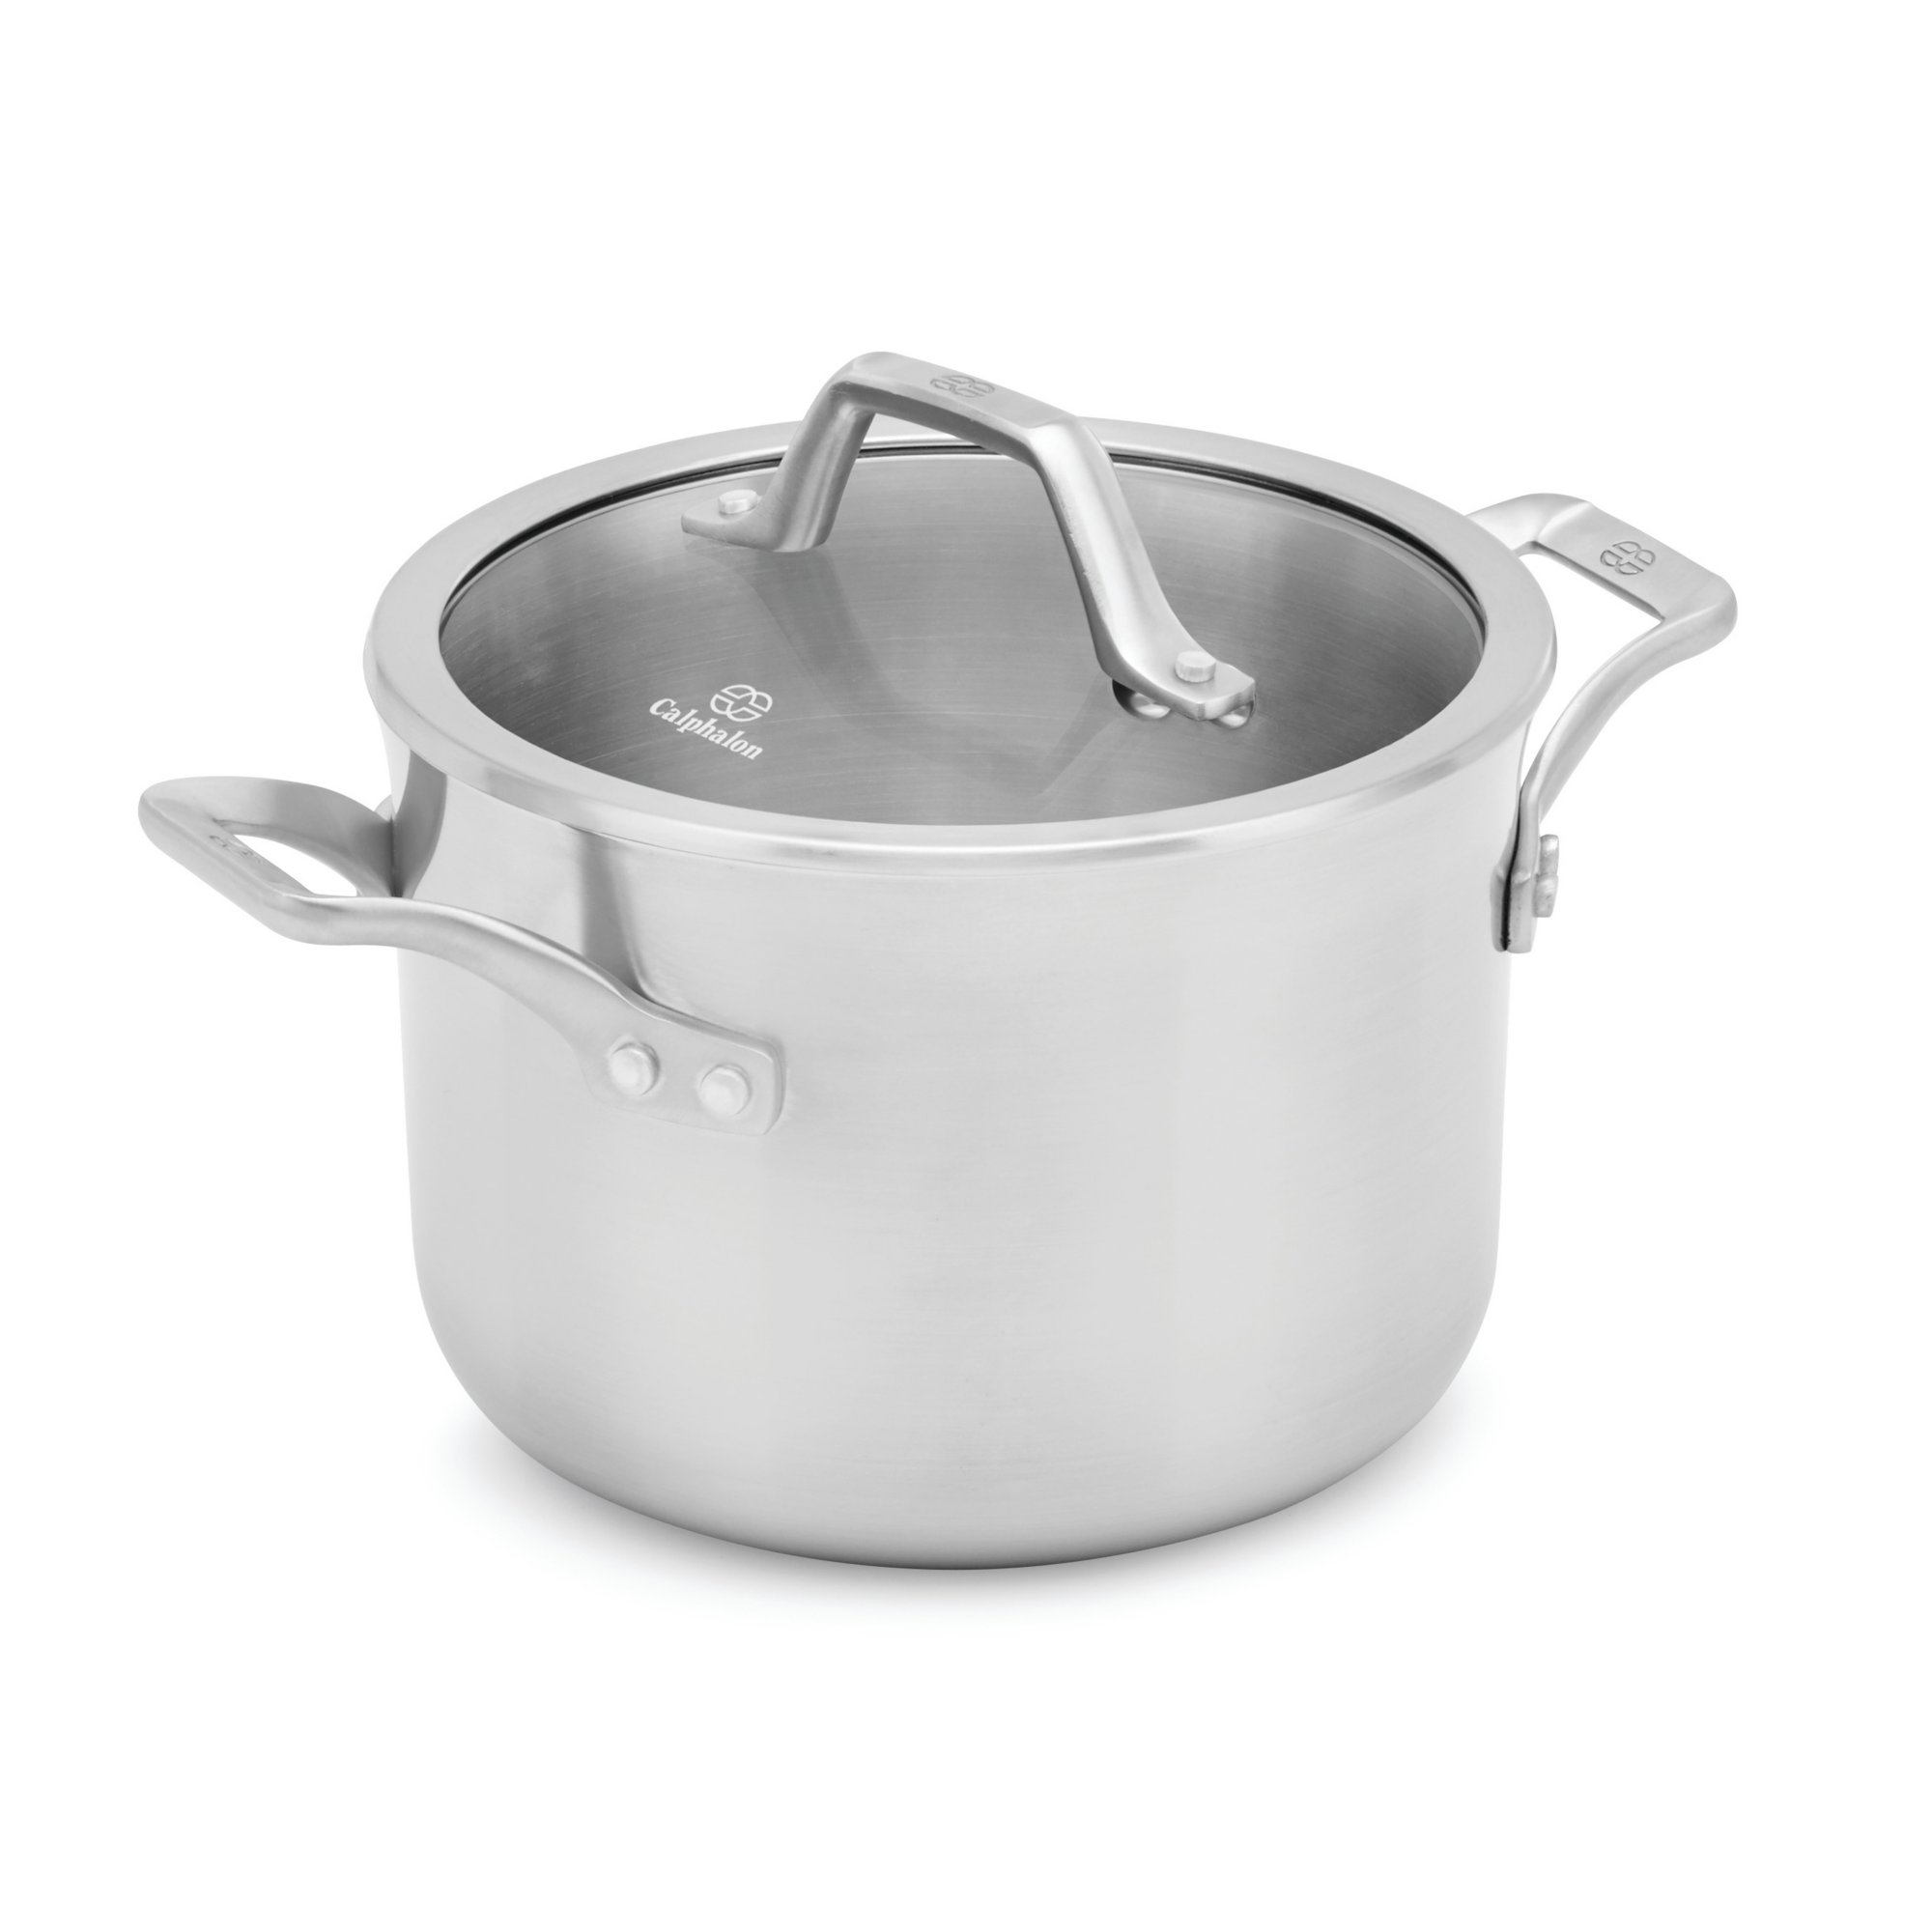 Calphalon Signature Stainless Steel Covered Soup Pot, 4 quart, Silver